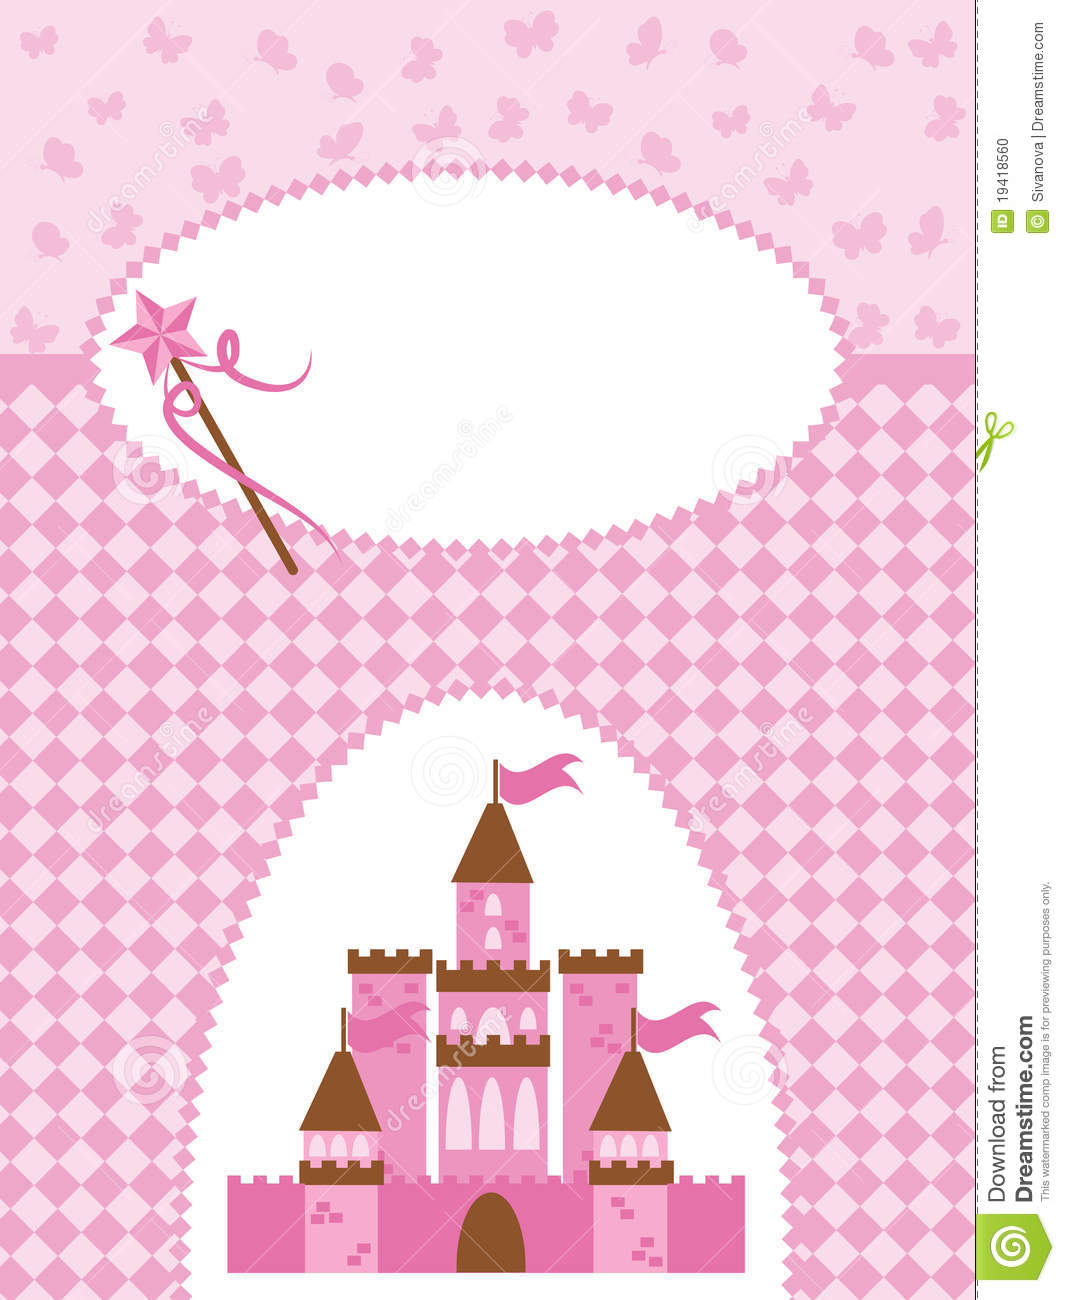 Prince And Princess Birthday Party Invitations is perfect invitation layout